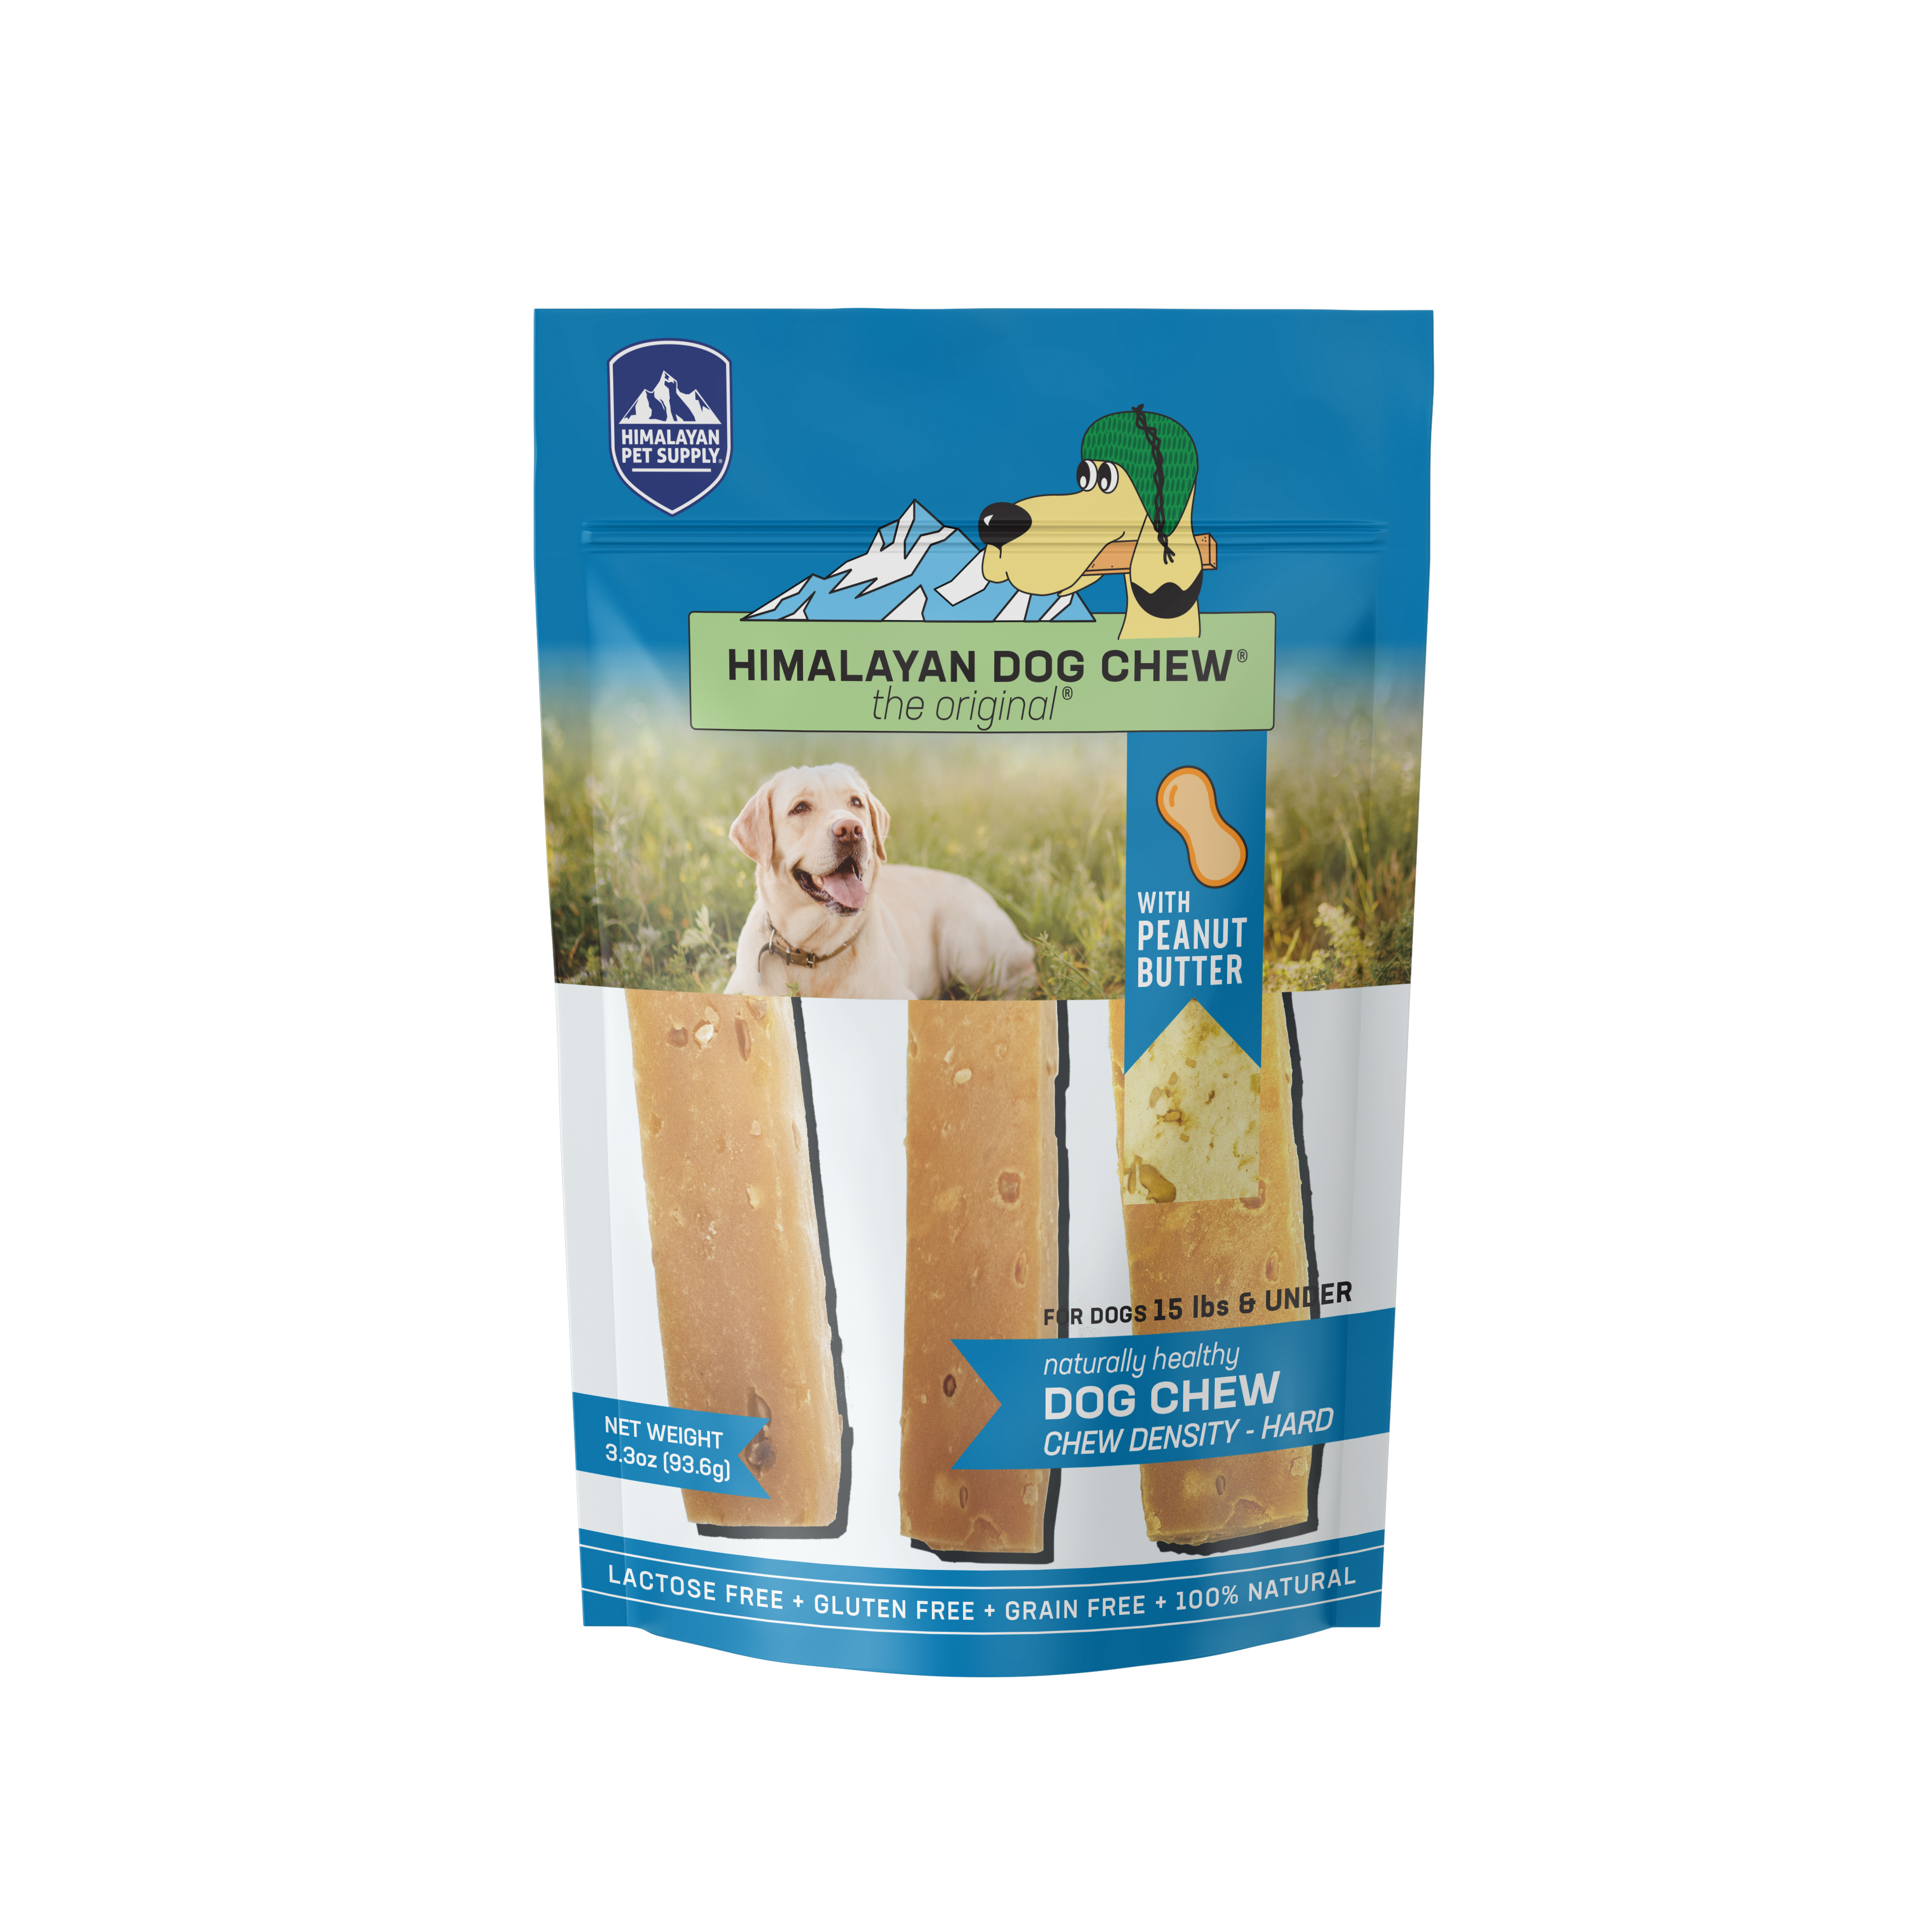 Himalayan Dog Chew, Peanut Butter Flavor, Small